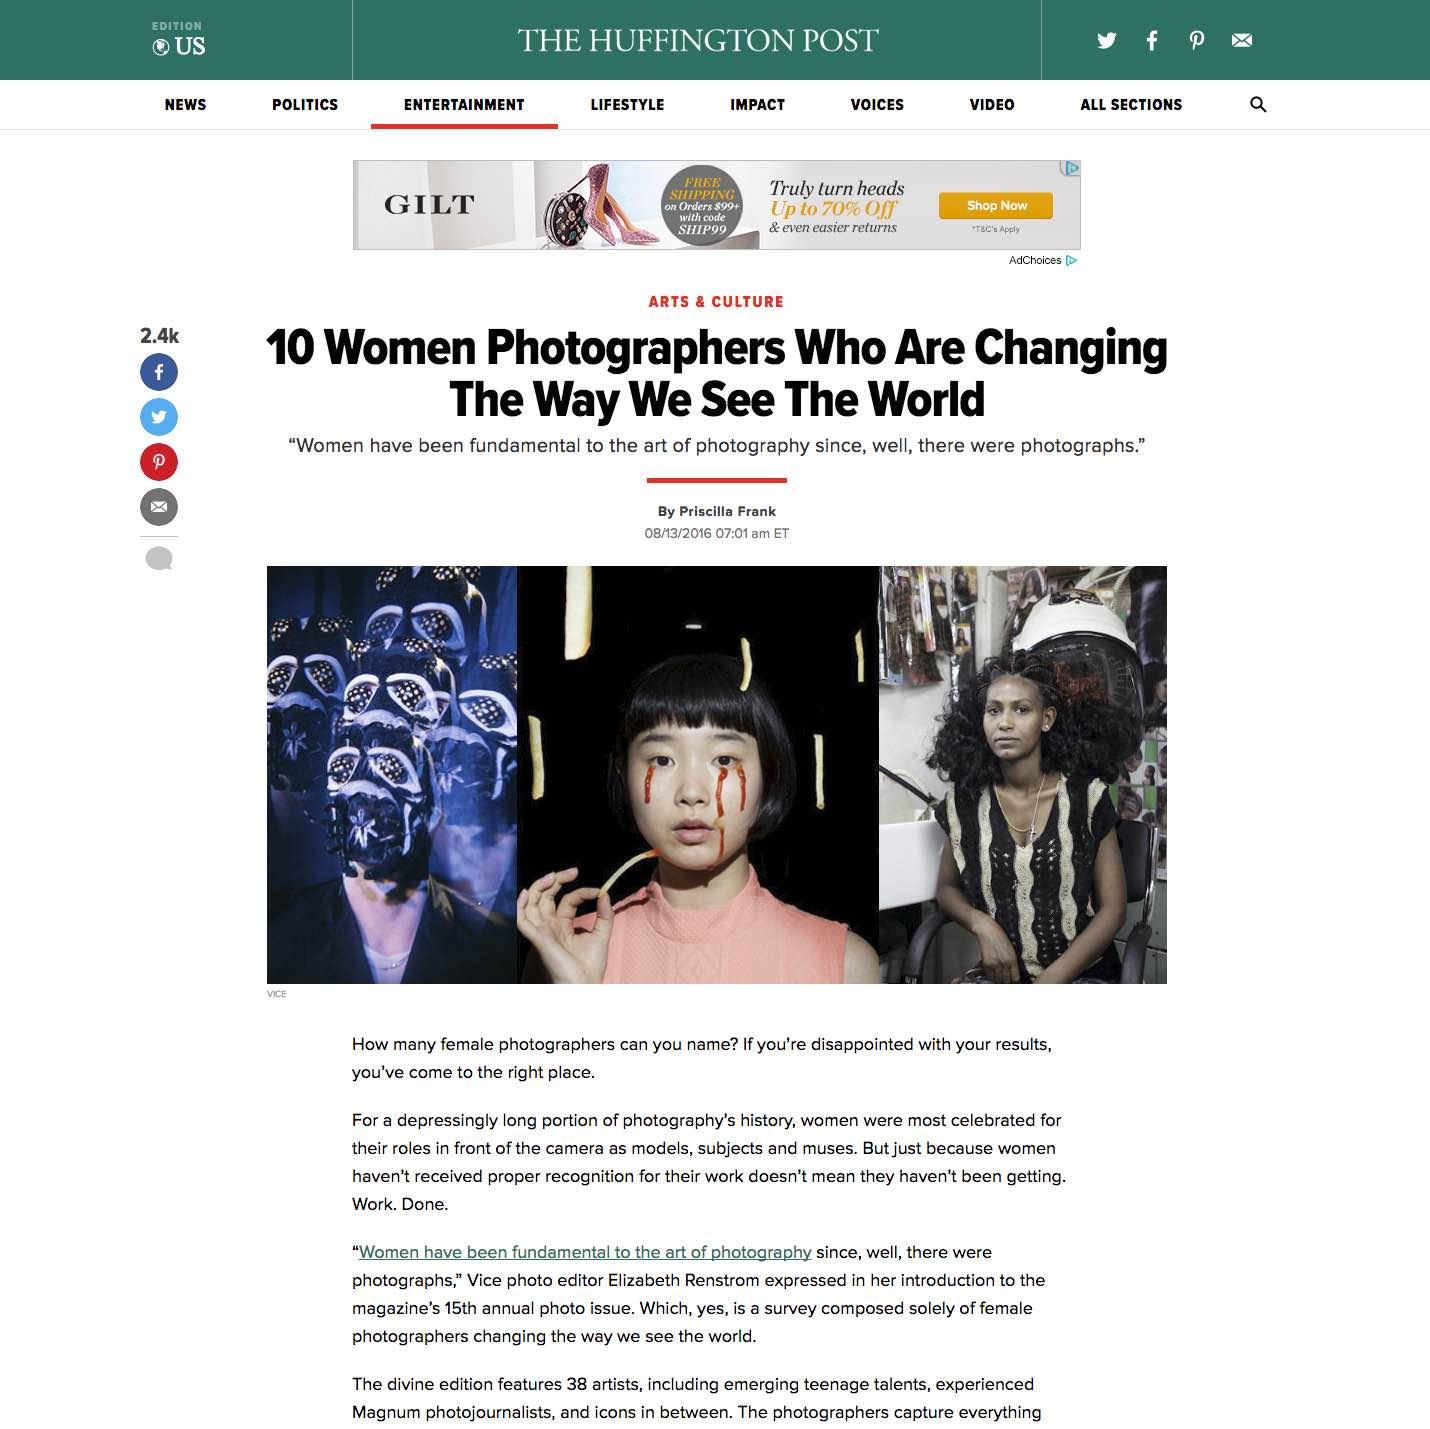 CLICK on title to link to full article     10 Women photographers who are changing the way we see the world  | Huffington Post, Aug 13, 2016